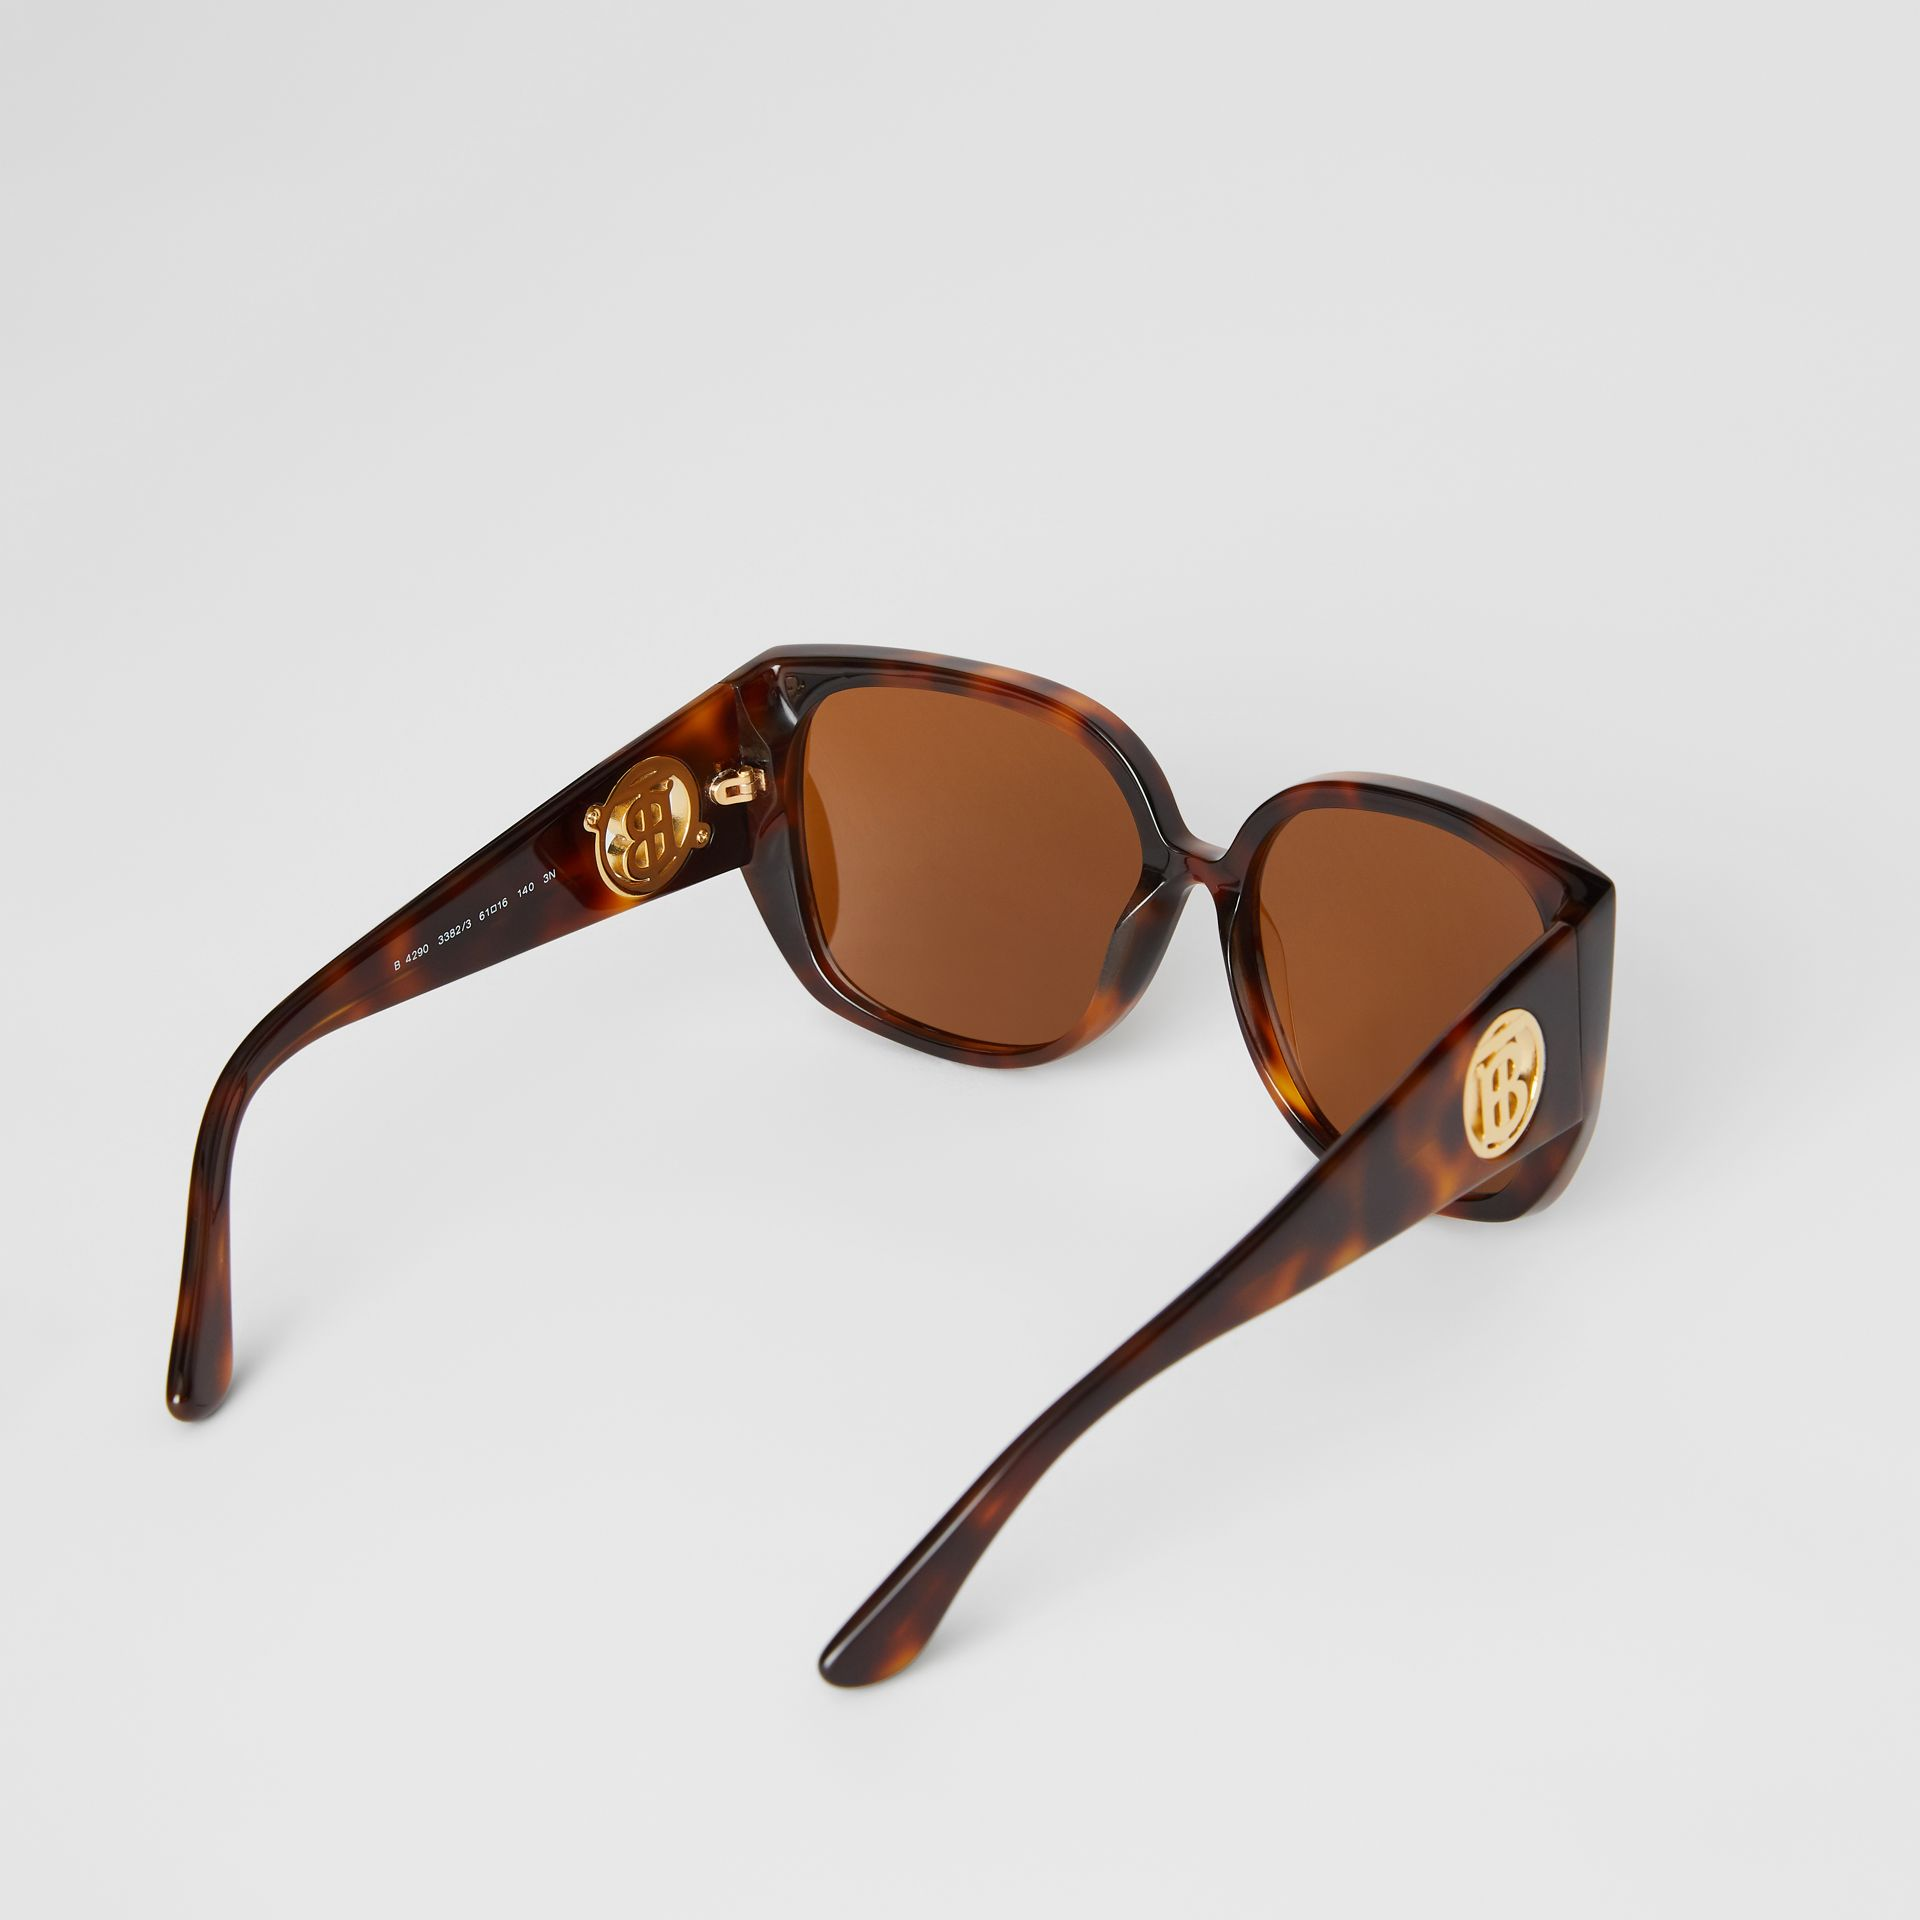 Oversized Butterfly Frame Sunglasses in Tortoiseshell - Women | Burberry - gallery image 3